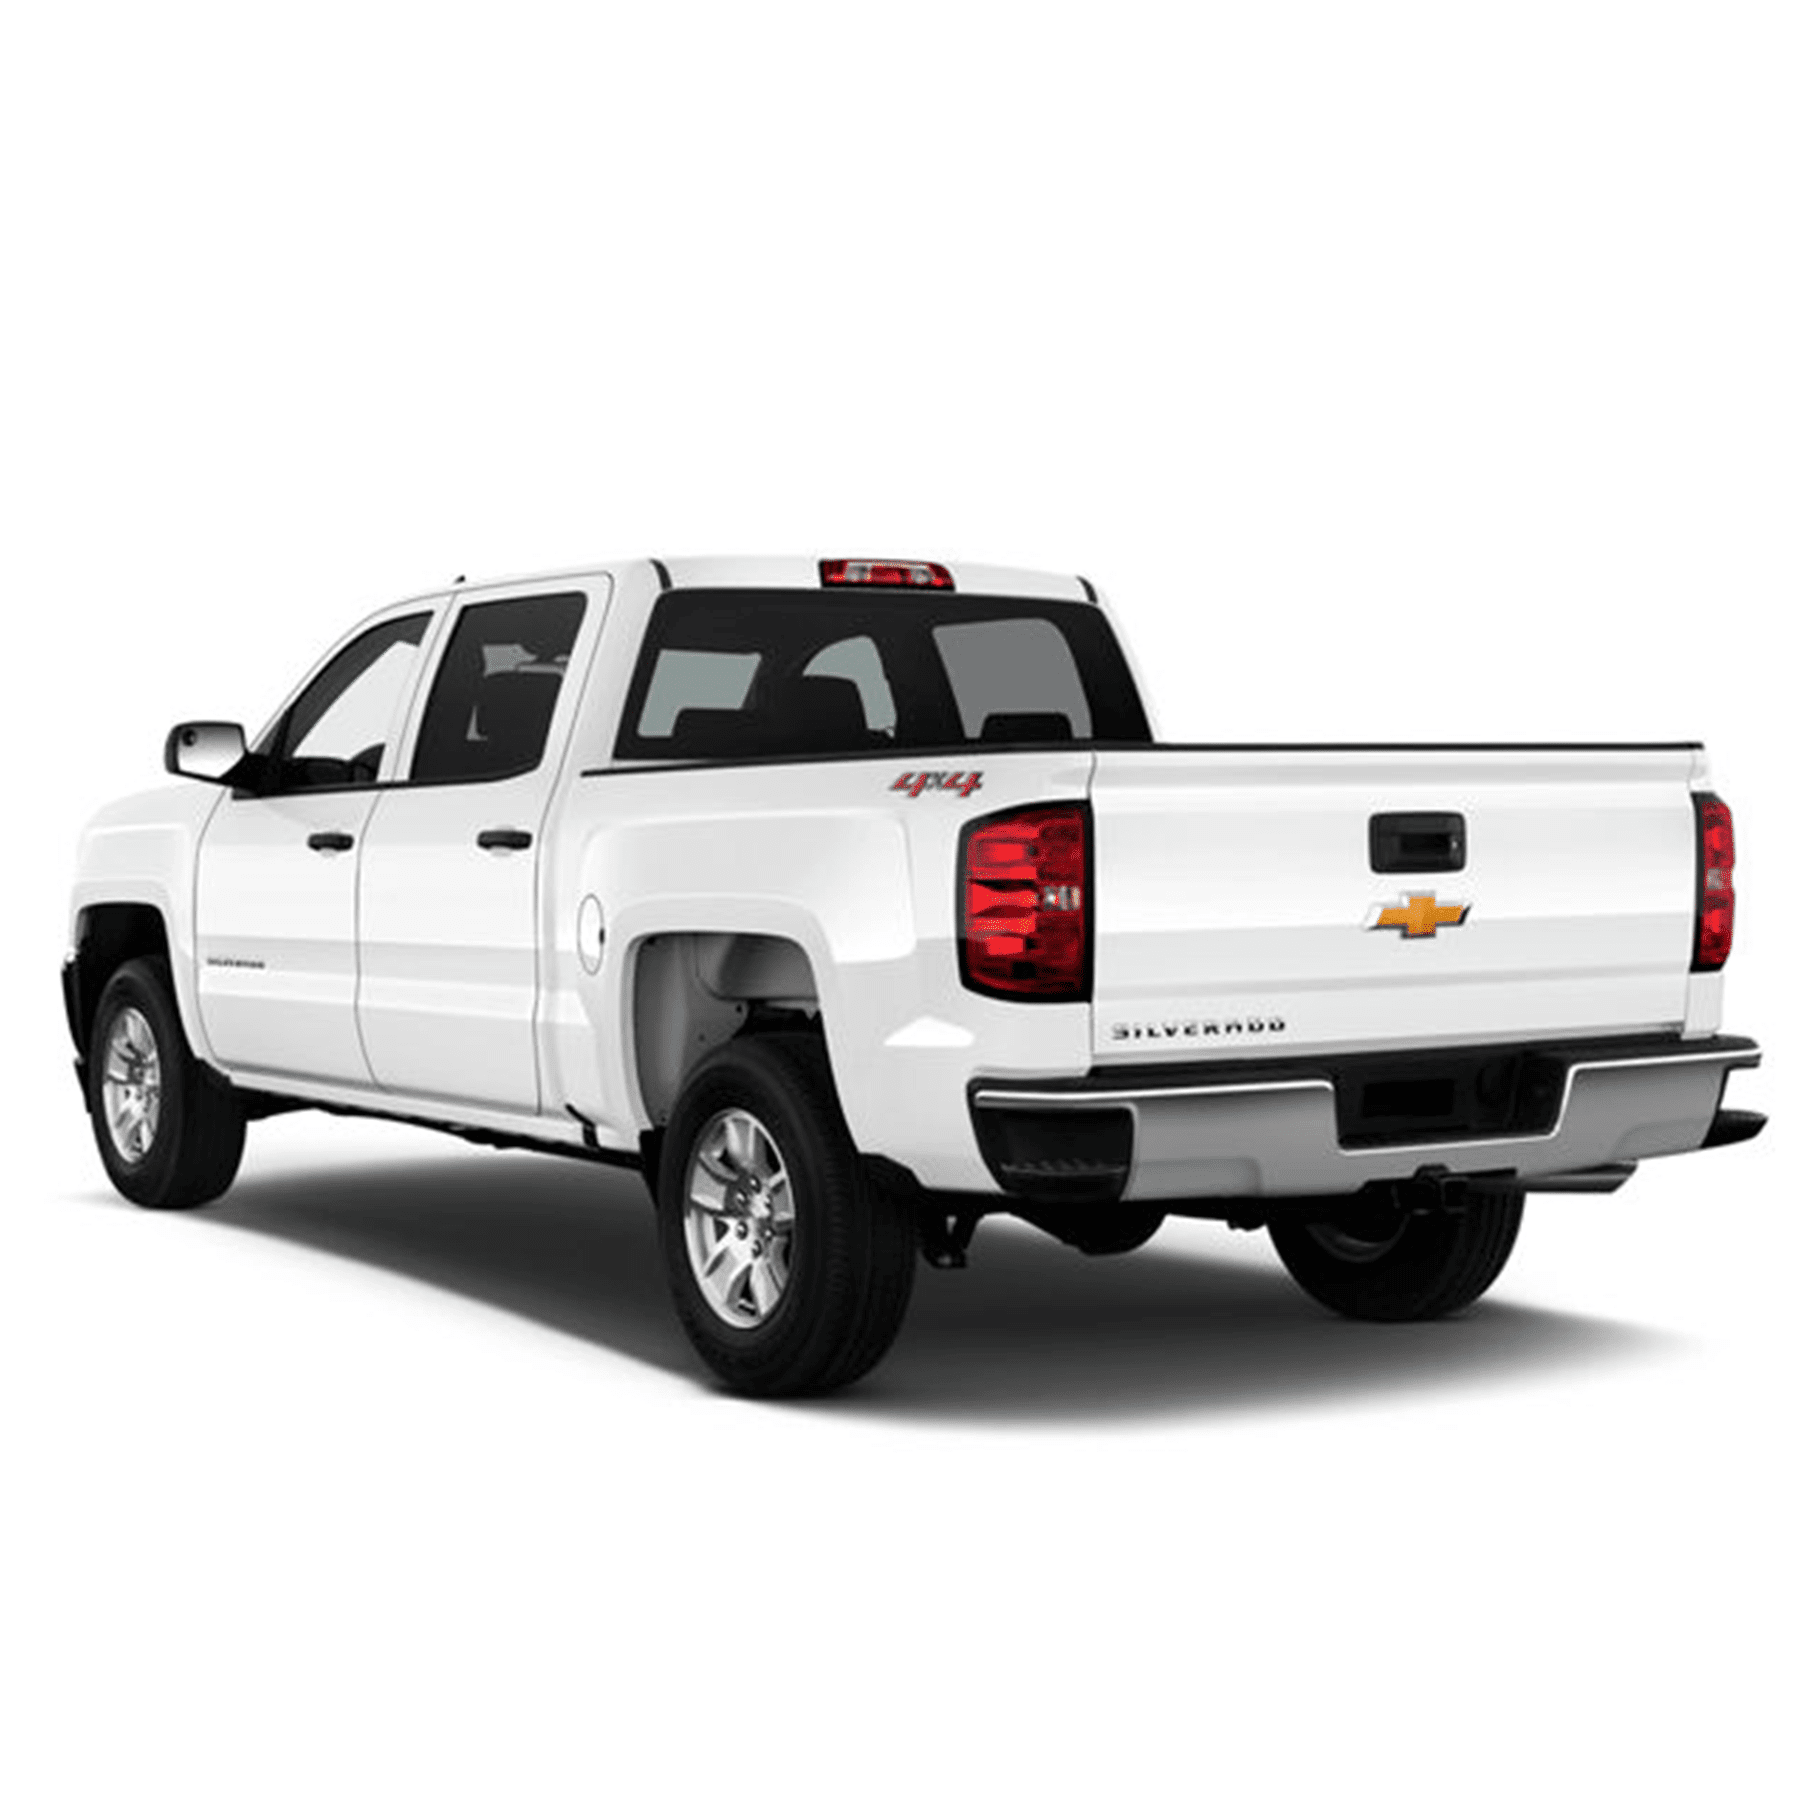 chevrolet colorado incentives with Industry Associations on 2017 Chevrolet Cruze Cruise Control further 2019 Silverado 1500 2500 Hd Redesign moreover 2017 Chevrolet Colorado Zr2 4wd 4d Crew Cab 1gcptee19h1286487 moreover Detail 2018 Chevrolet Colorado 4wd crew cab 140 5 z71 New 17185521 together with Photo 01.